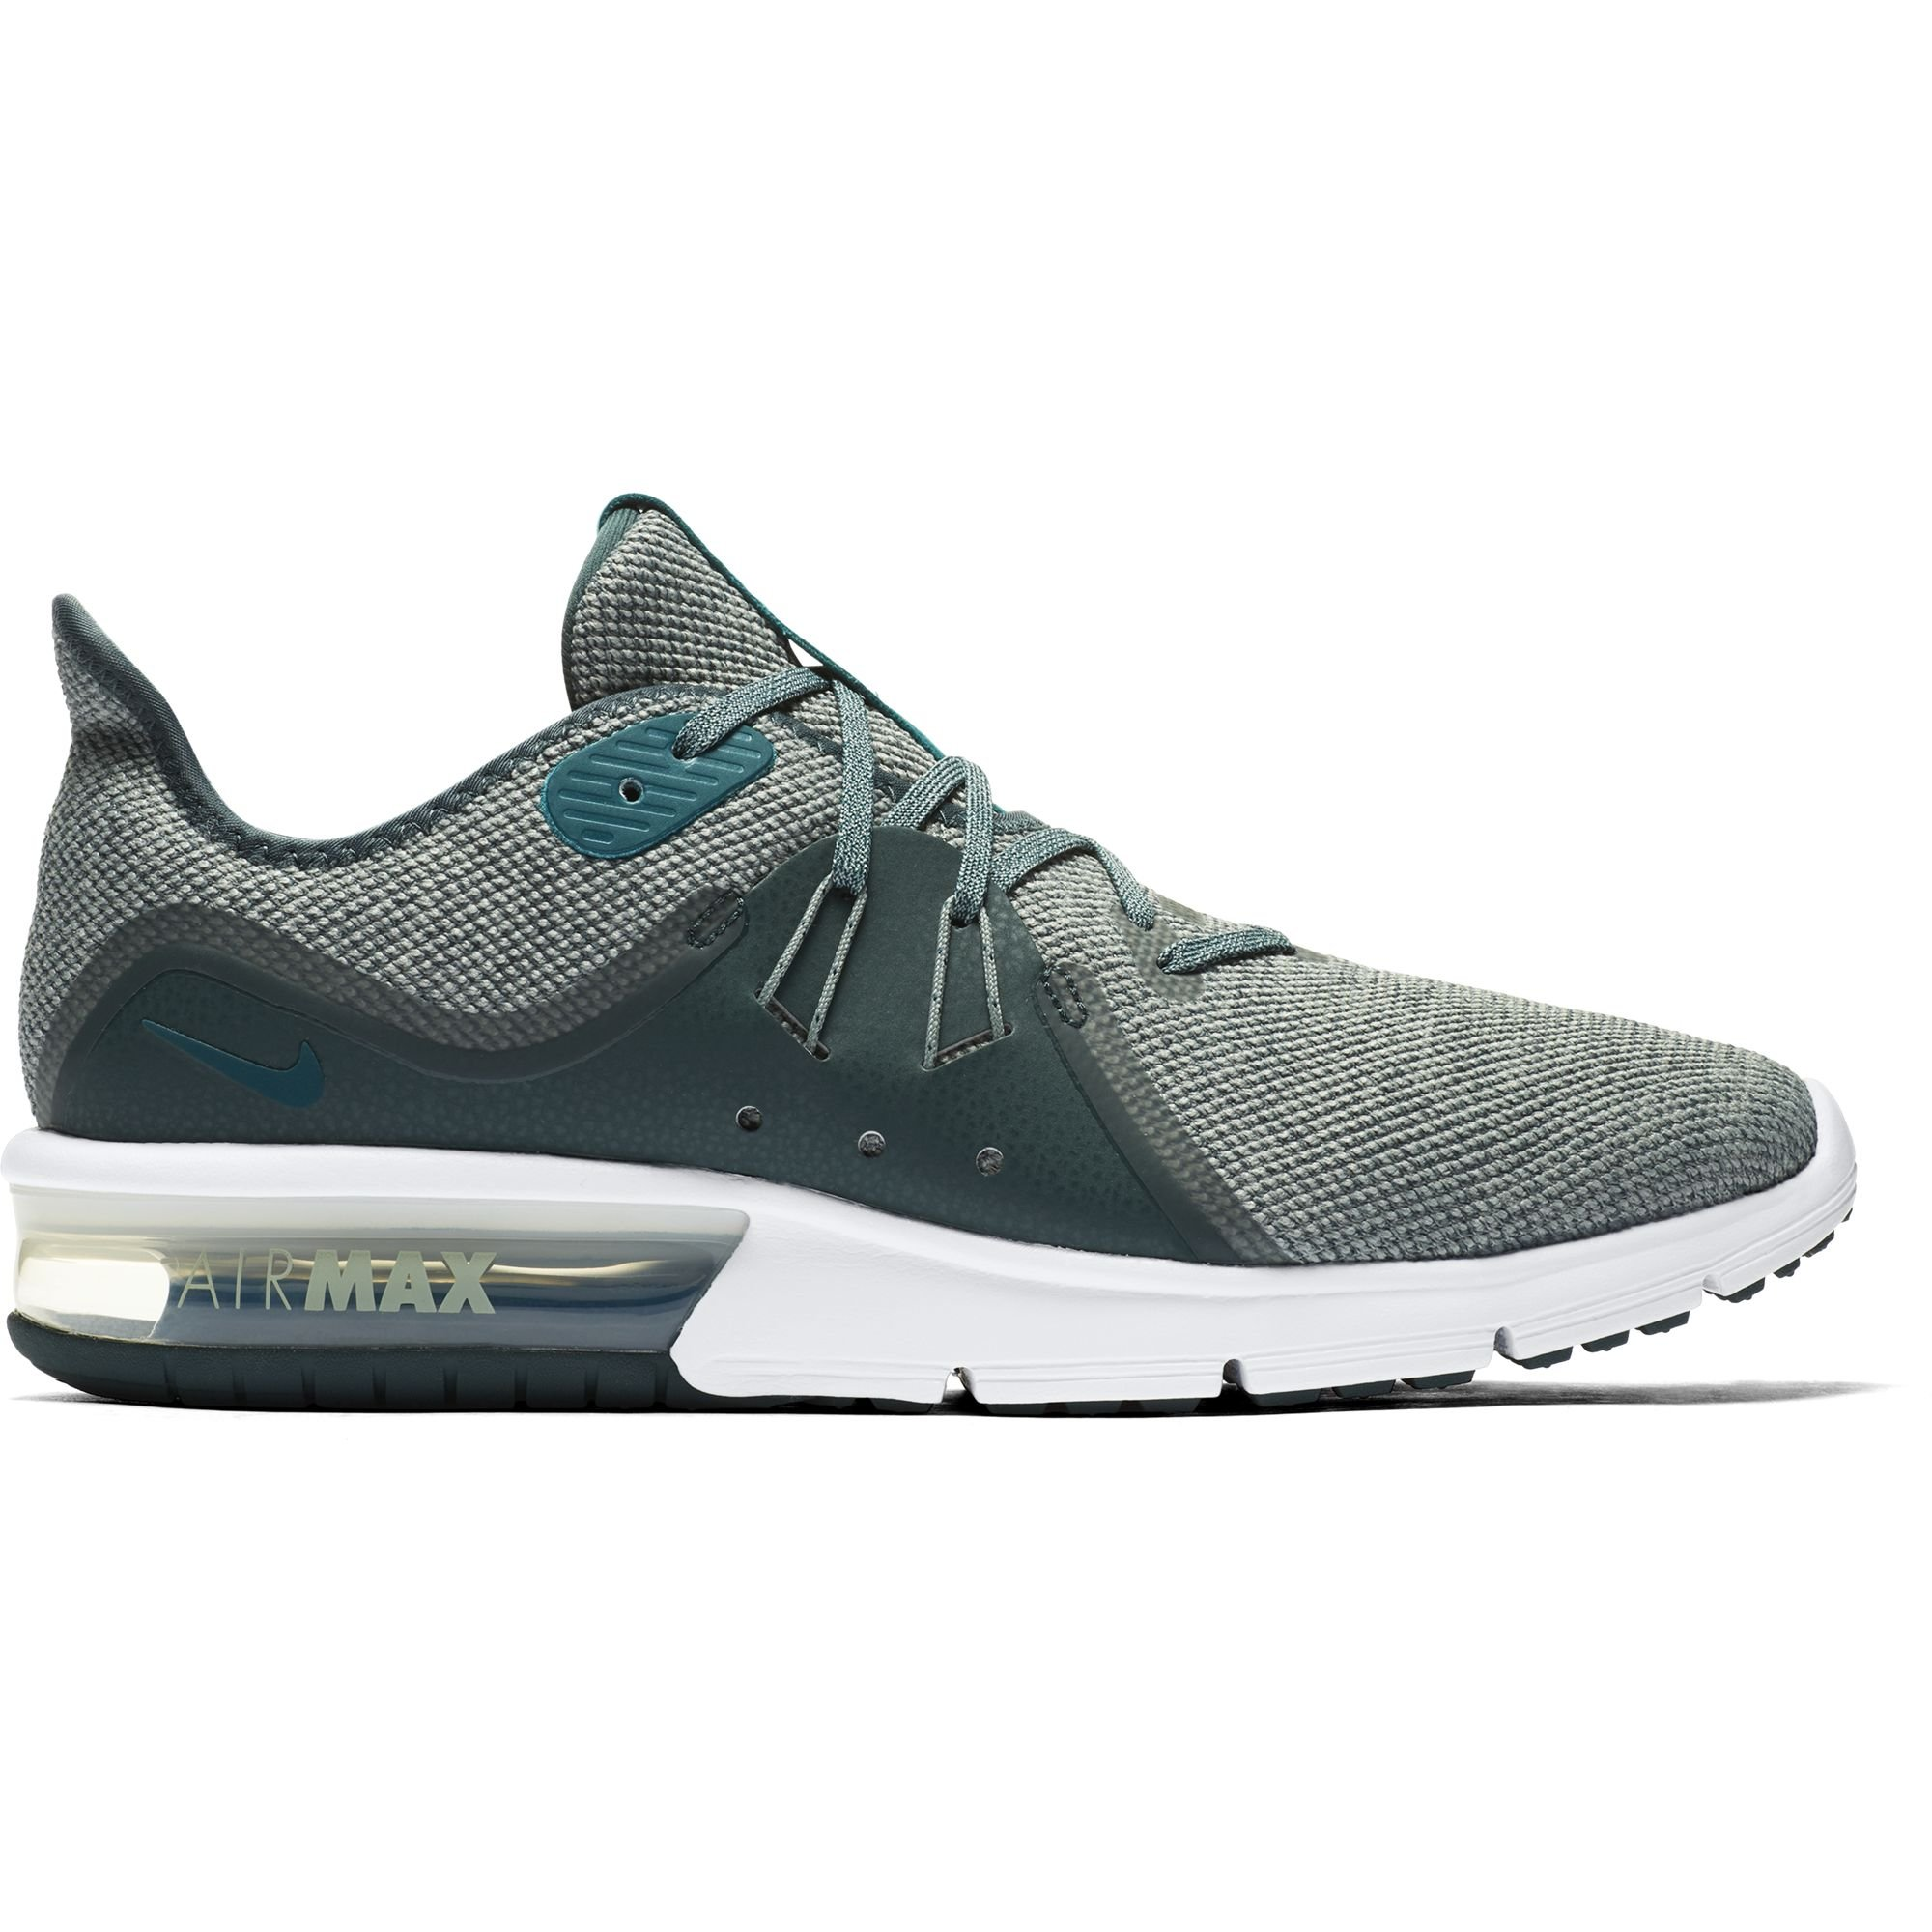 timeless design 436a7 55093 Galleon - Nike Men s Air Max Sequent 3 Running Shoe Mica Green Geode  Teal Faded Spruce Size 9.5 D US